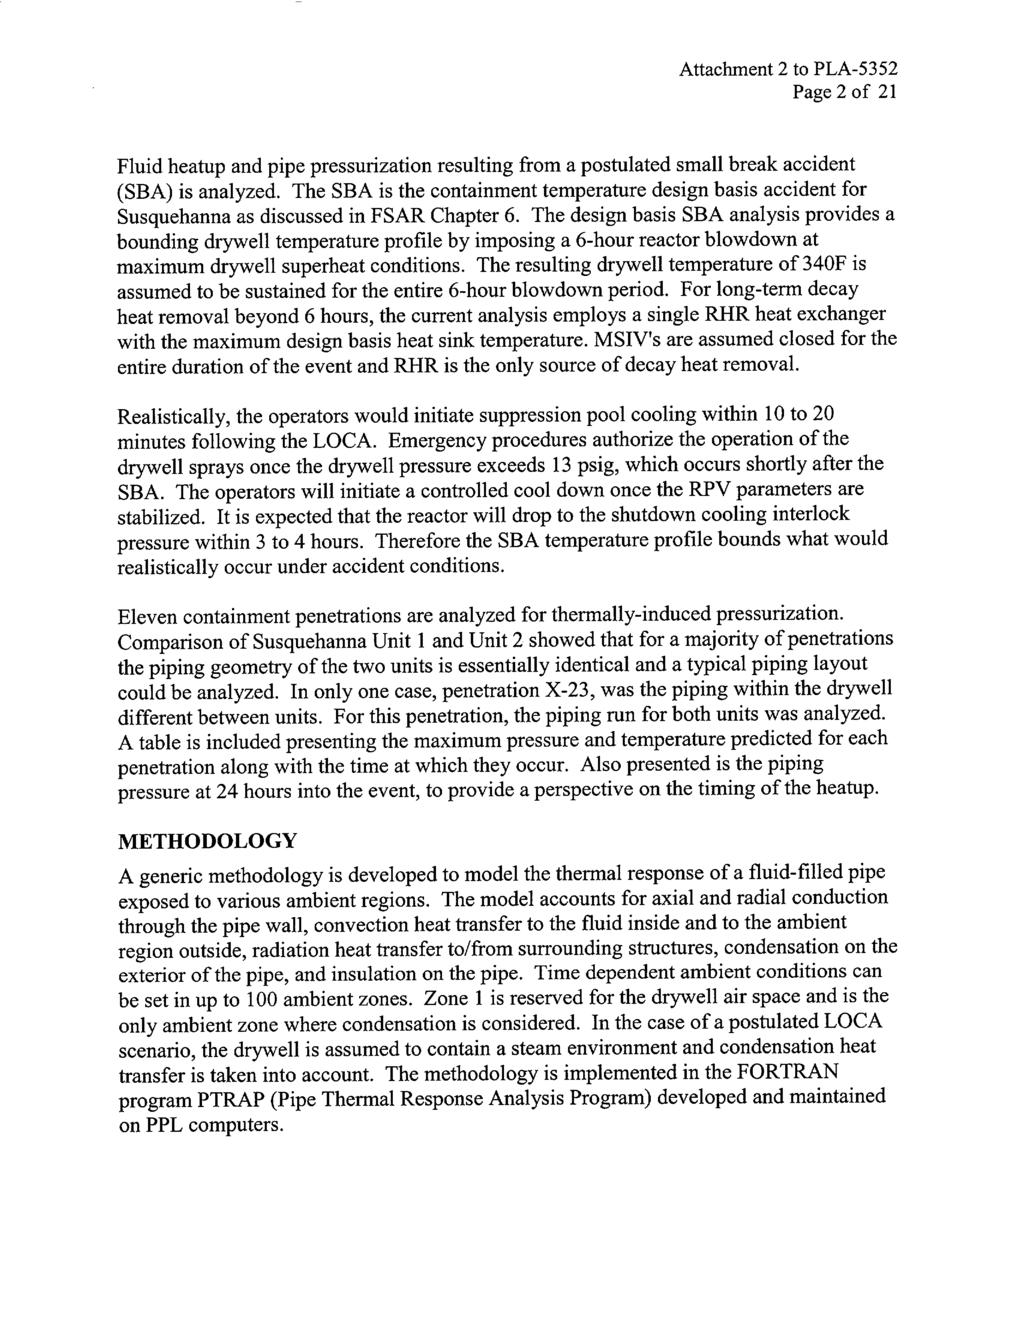 Attachment 2 to PLA-5352 Page 2 of 21 Fluid heatup and pipe pressurization resulting from a postulated small break accident (SBA) is analyzed.